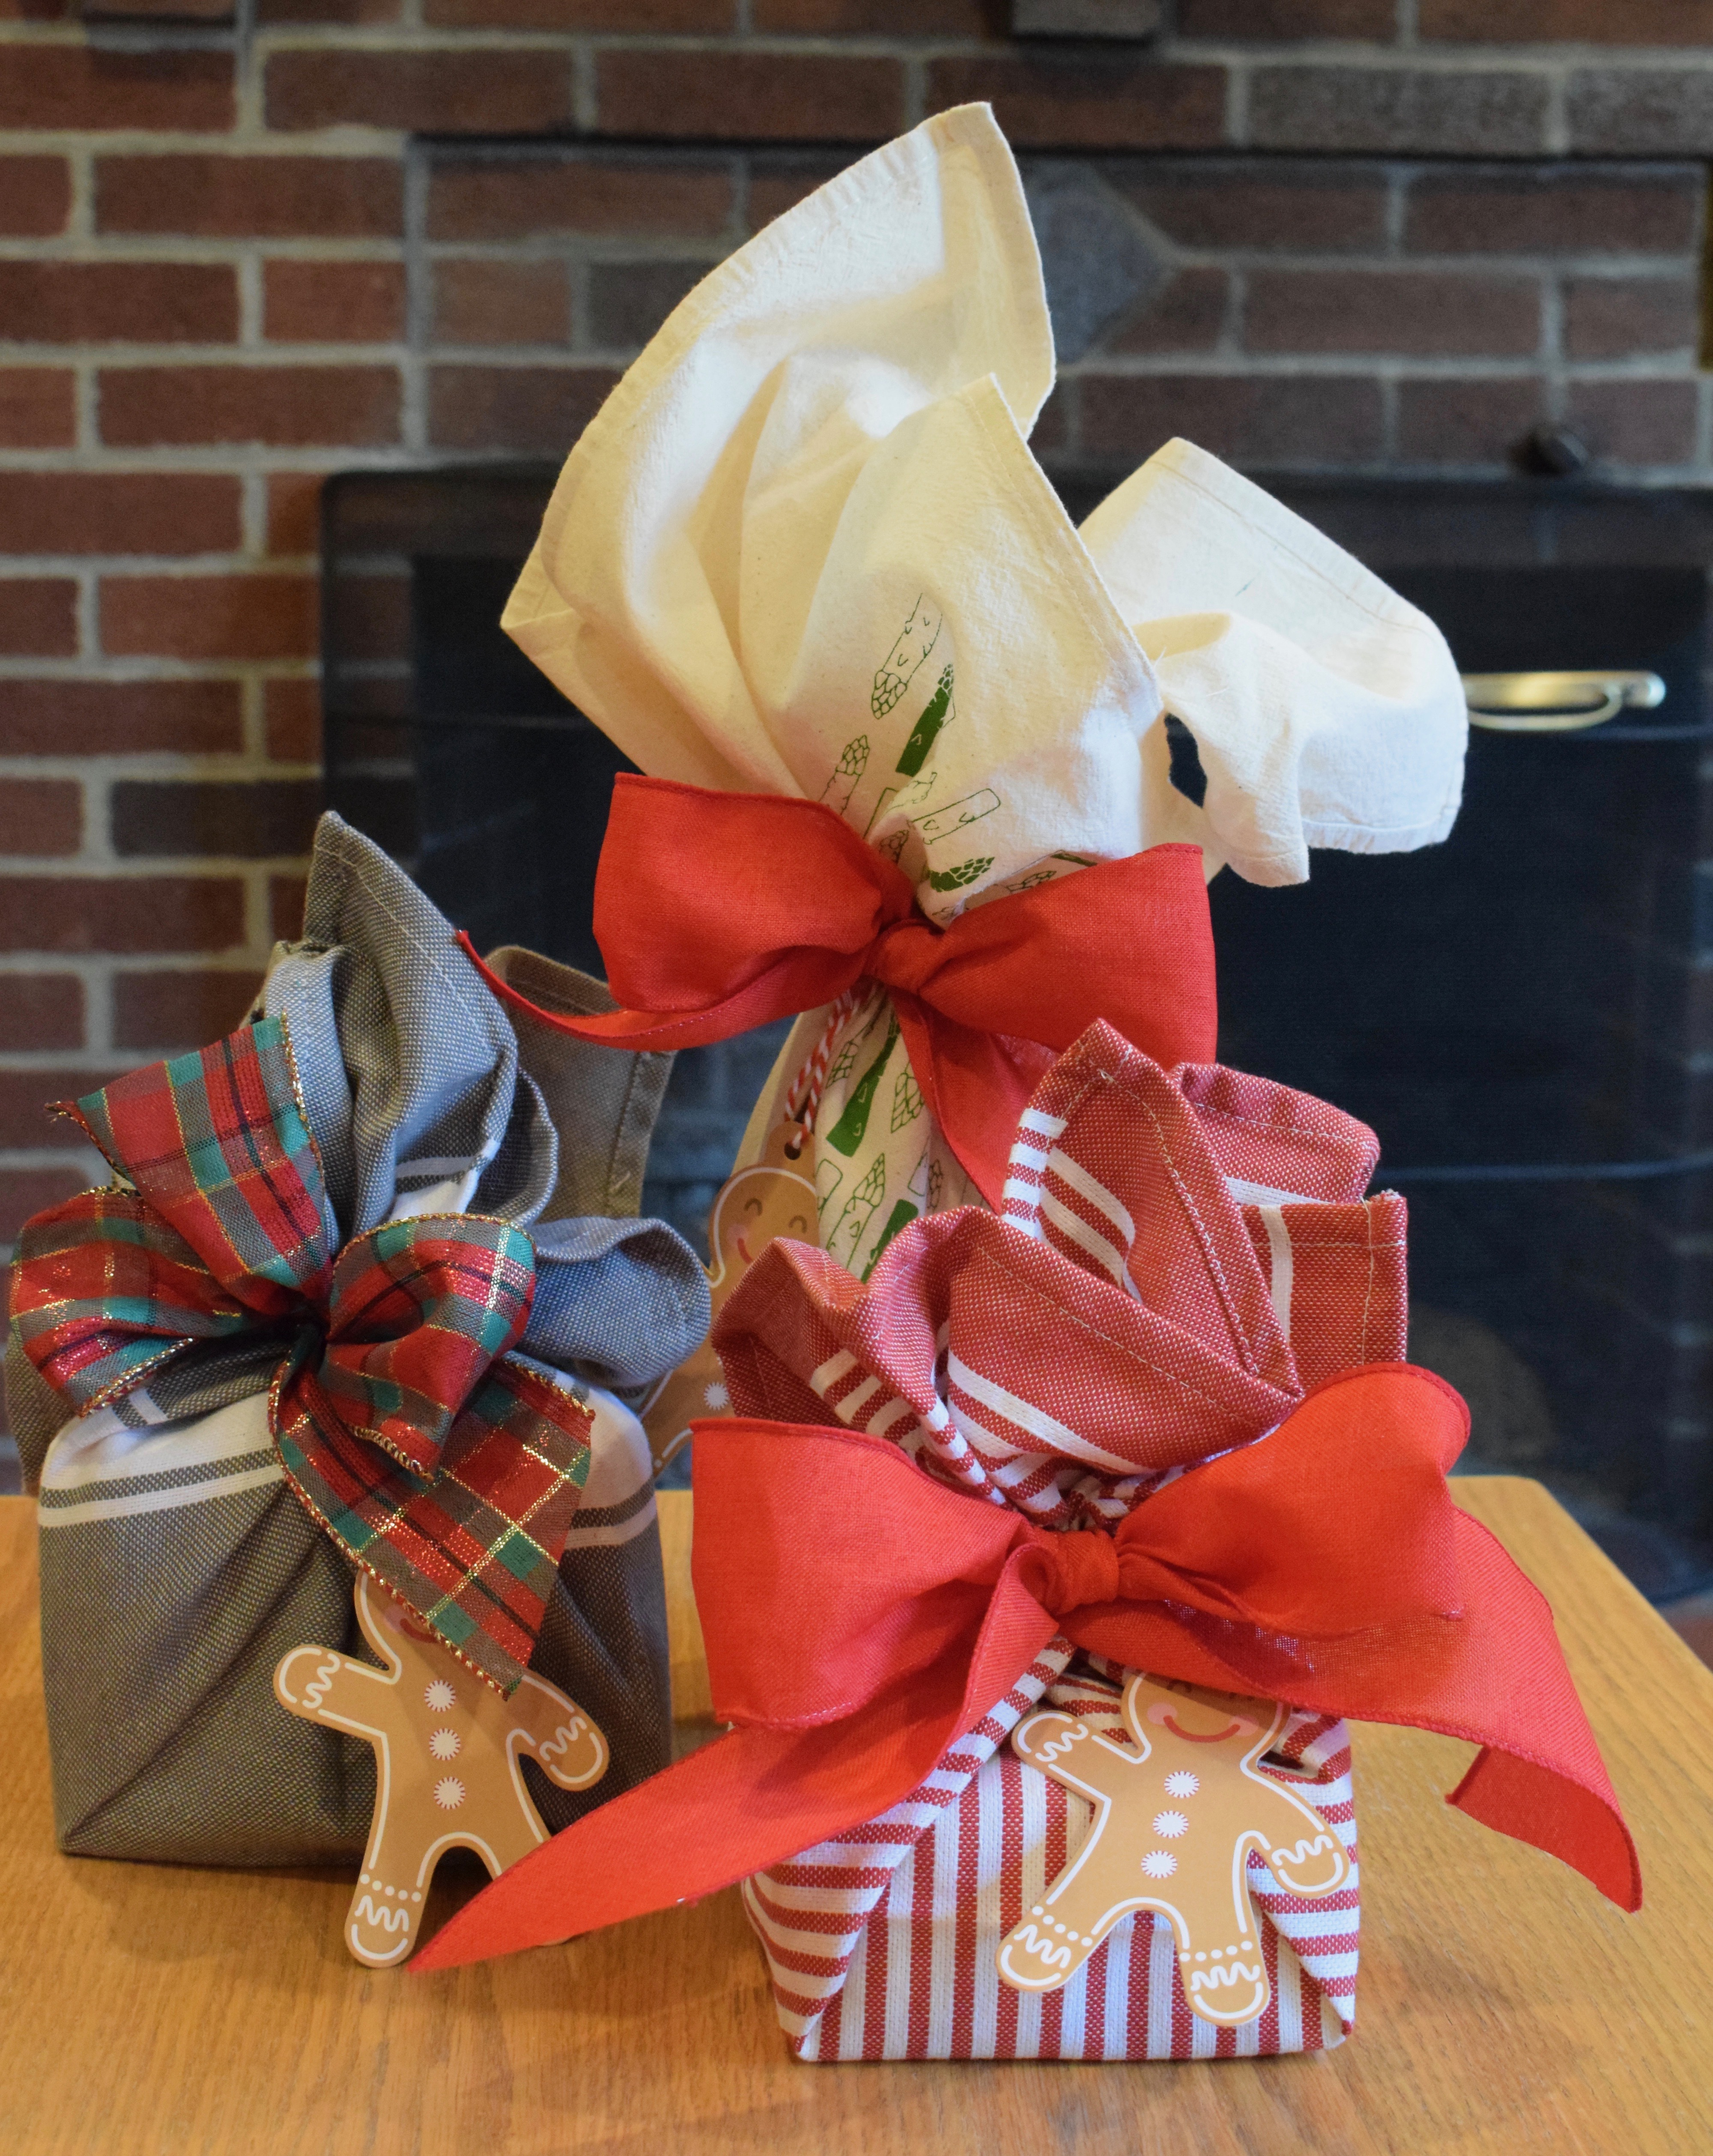 Gifts Wrapped in Kitchen Towels, Reusable Gift Wrapping